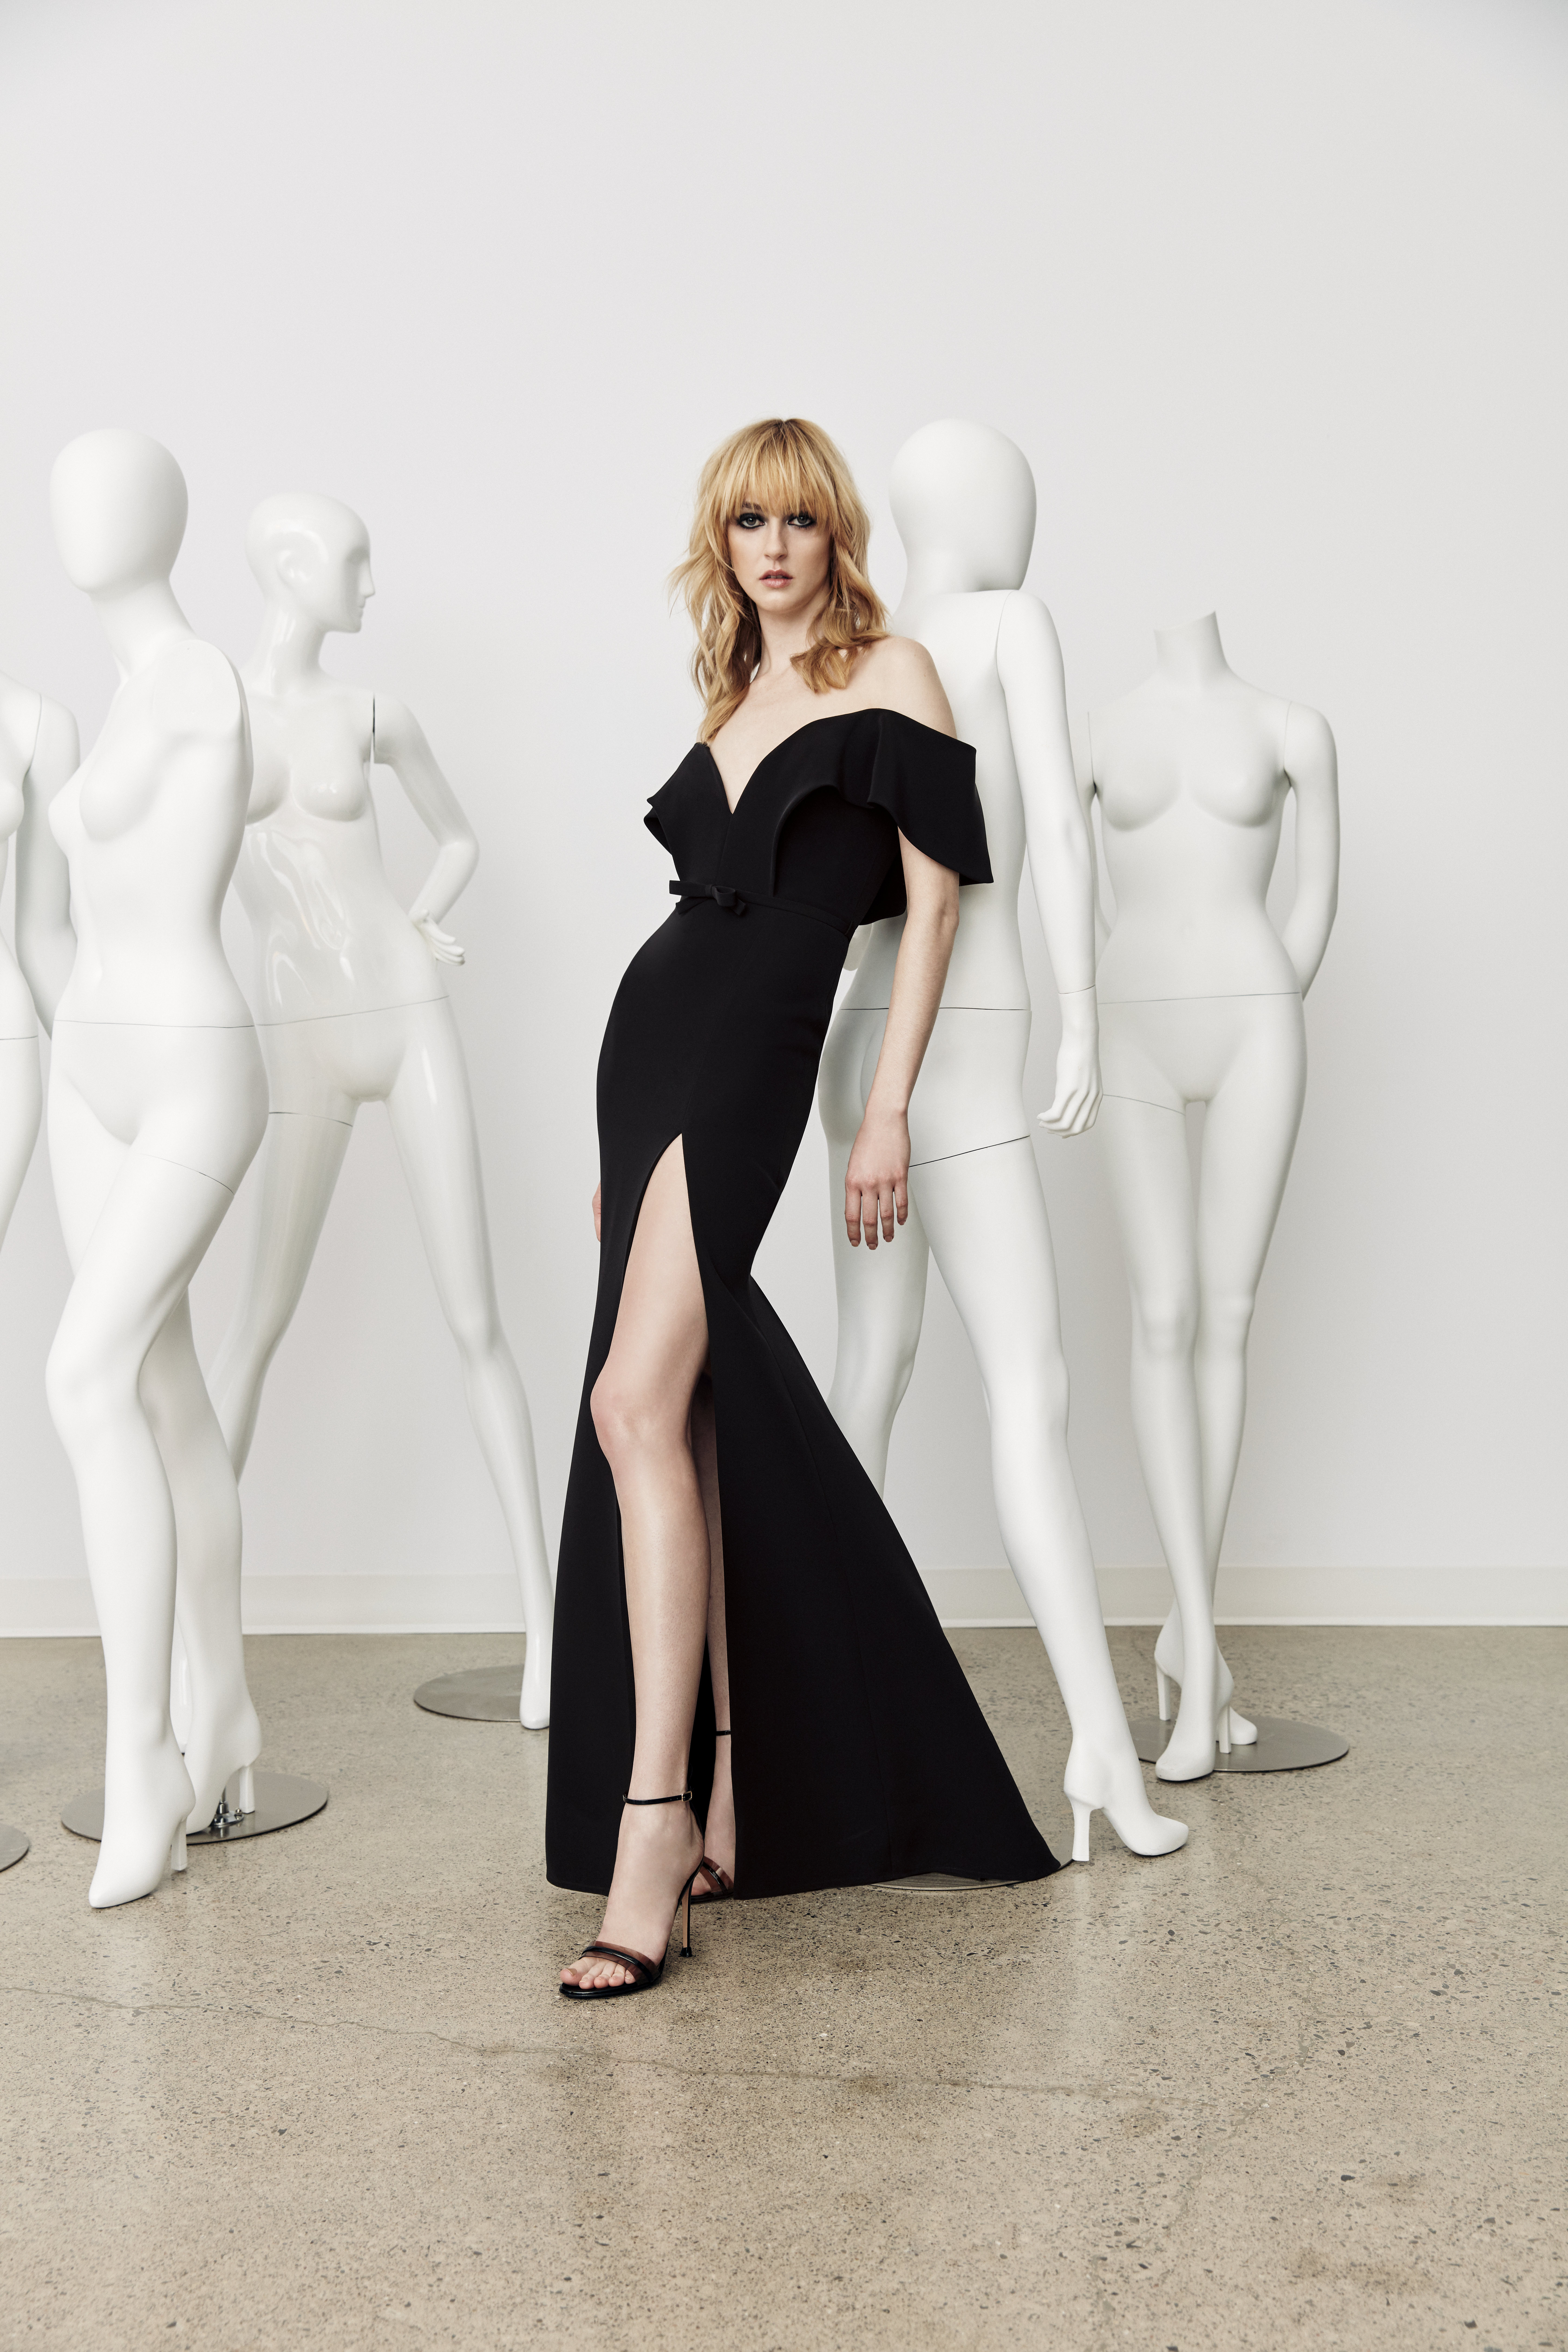 Mira Couture Wayne Clark 5704 Cocktail Dress Formalwear Eveningwear Mother of the Bride Groom Chicago Boutique